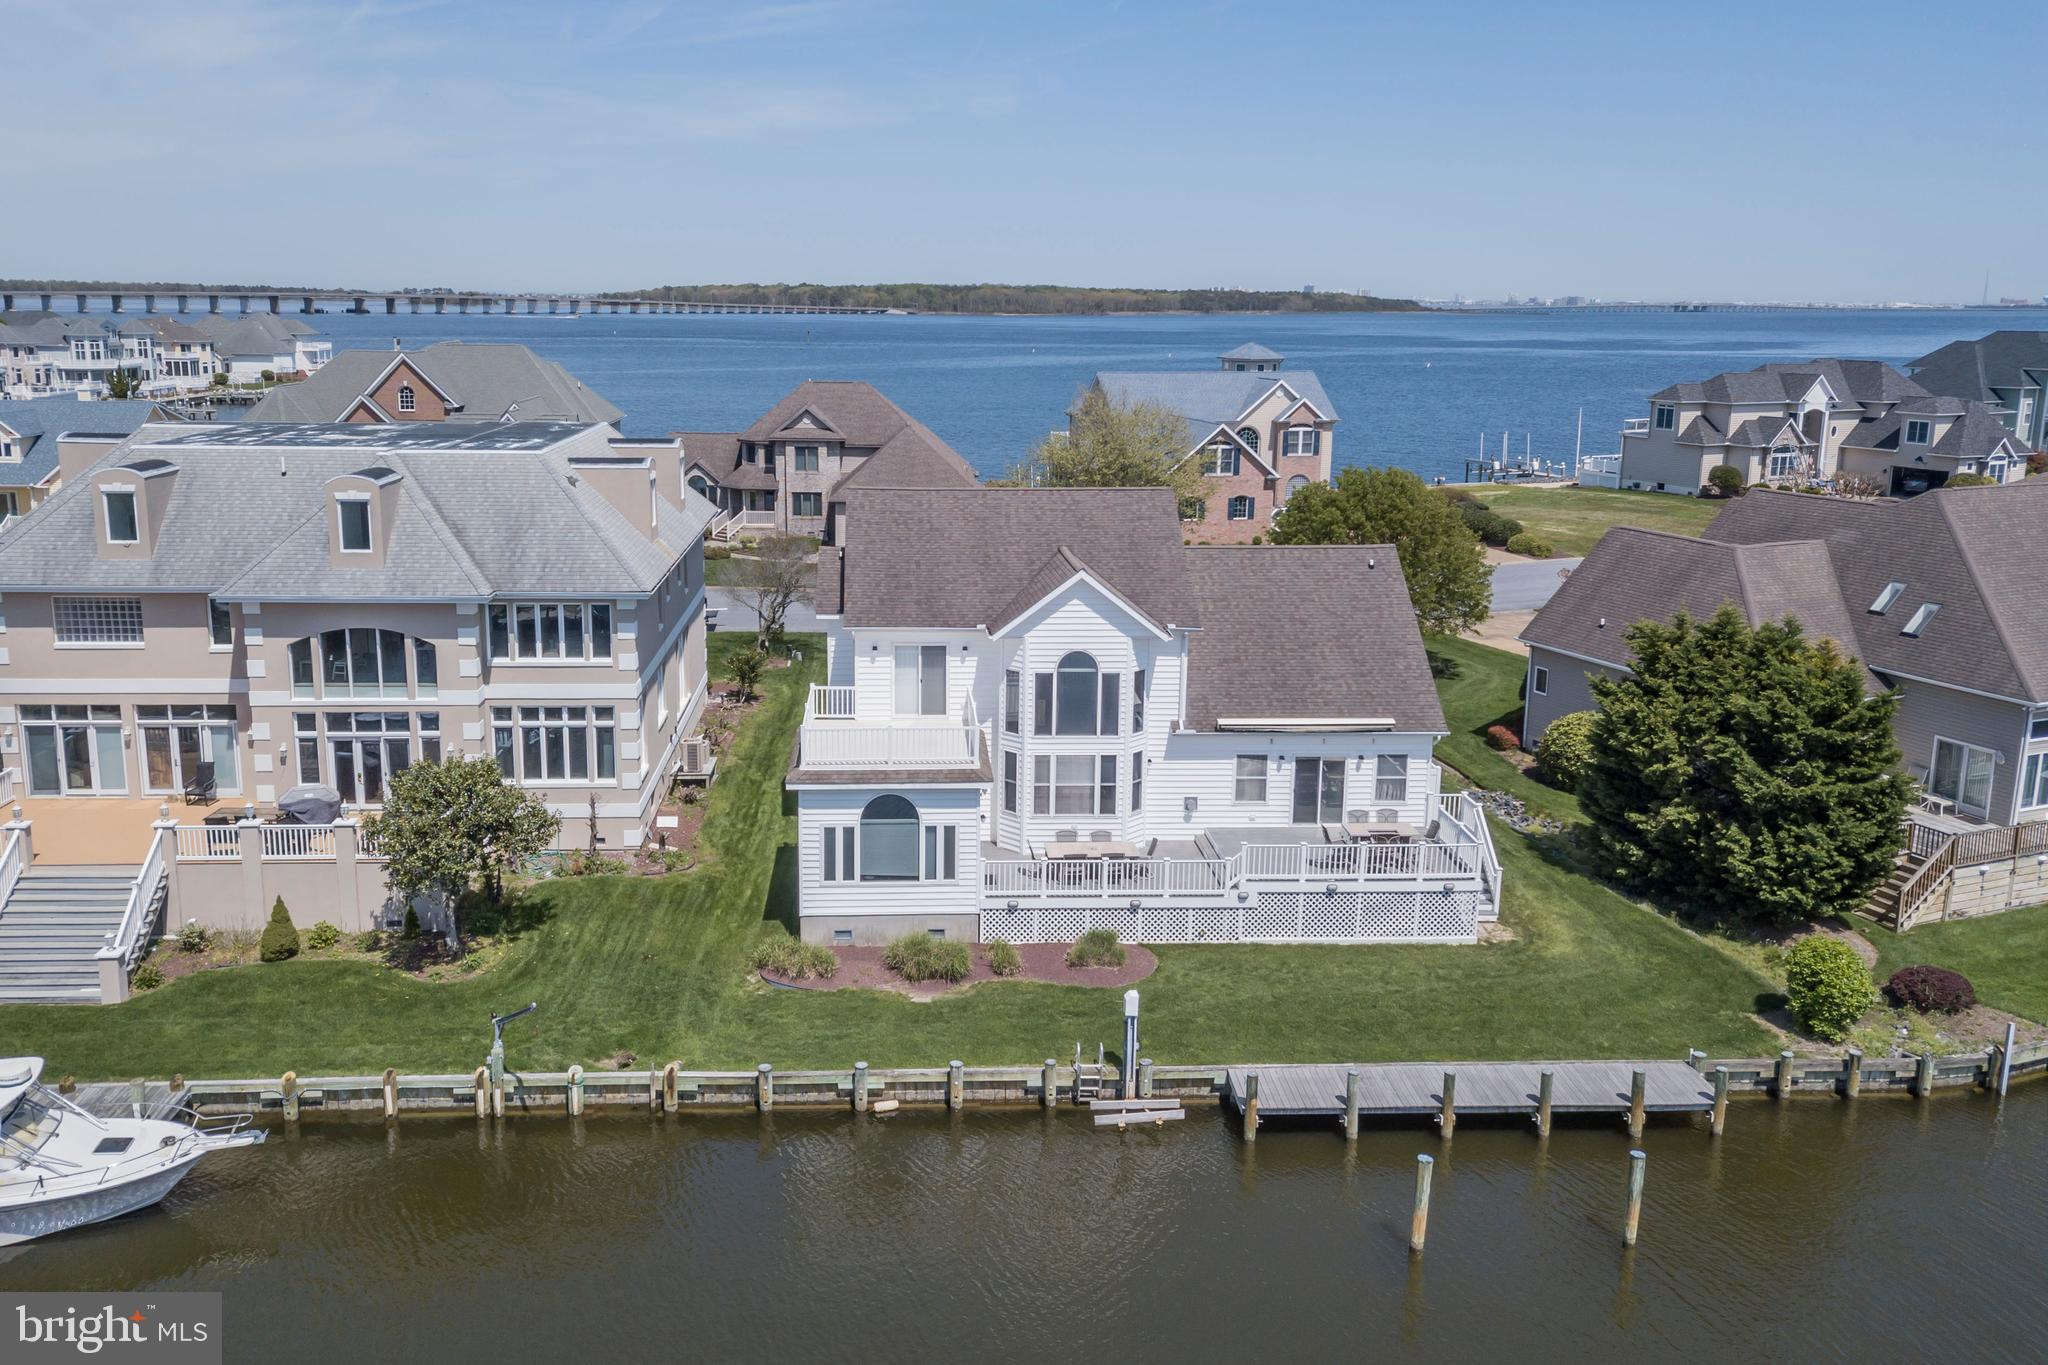 12 Leigh Dr, Ocean Pines, MD, 21811